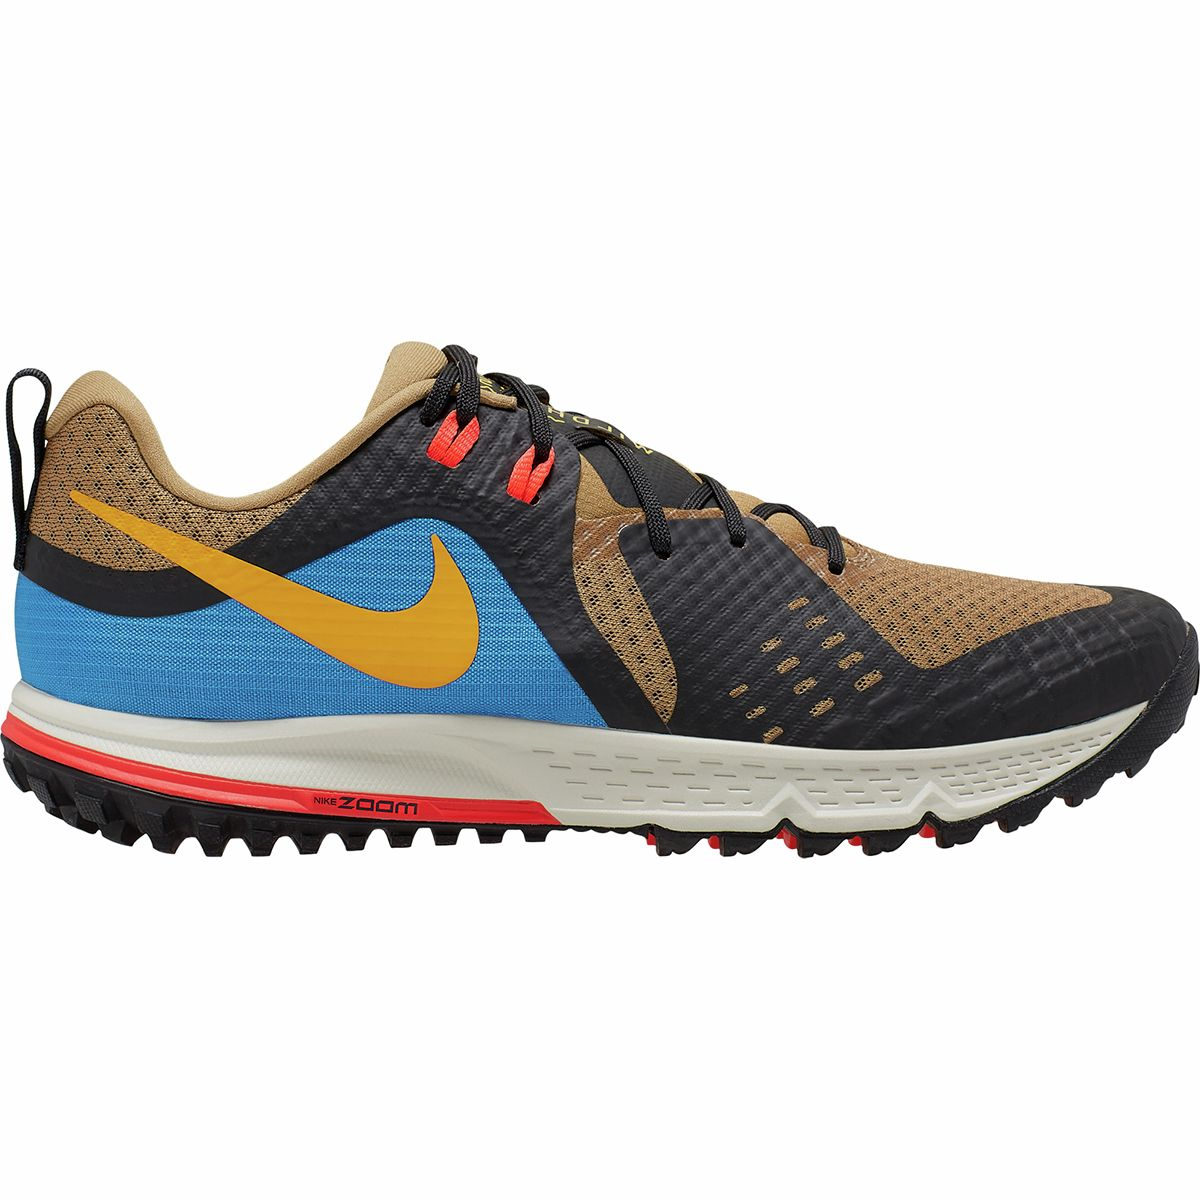 Nike Air Men's Zoom 5 Trail Shoe Wildhorse Running wOy0PmN8nv